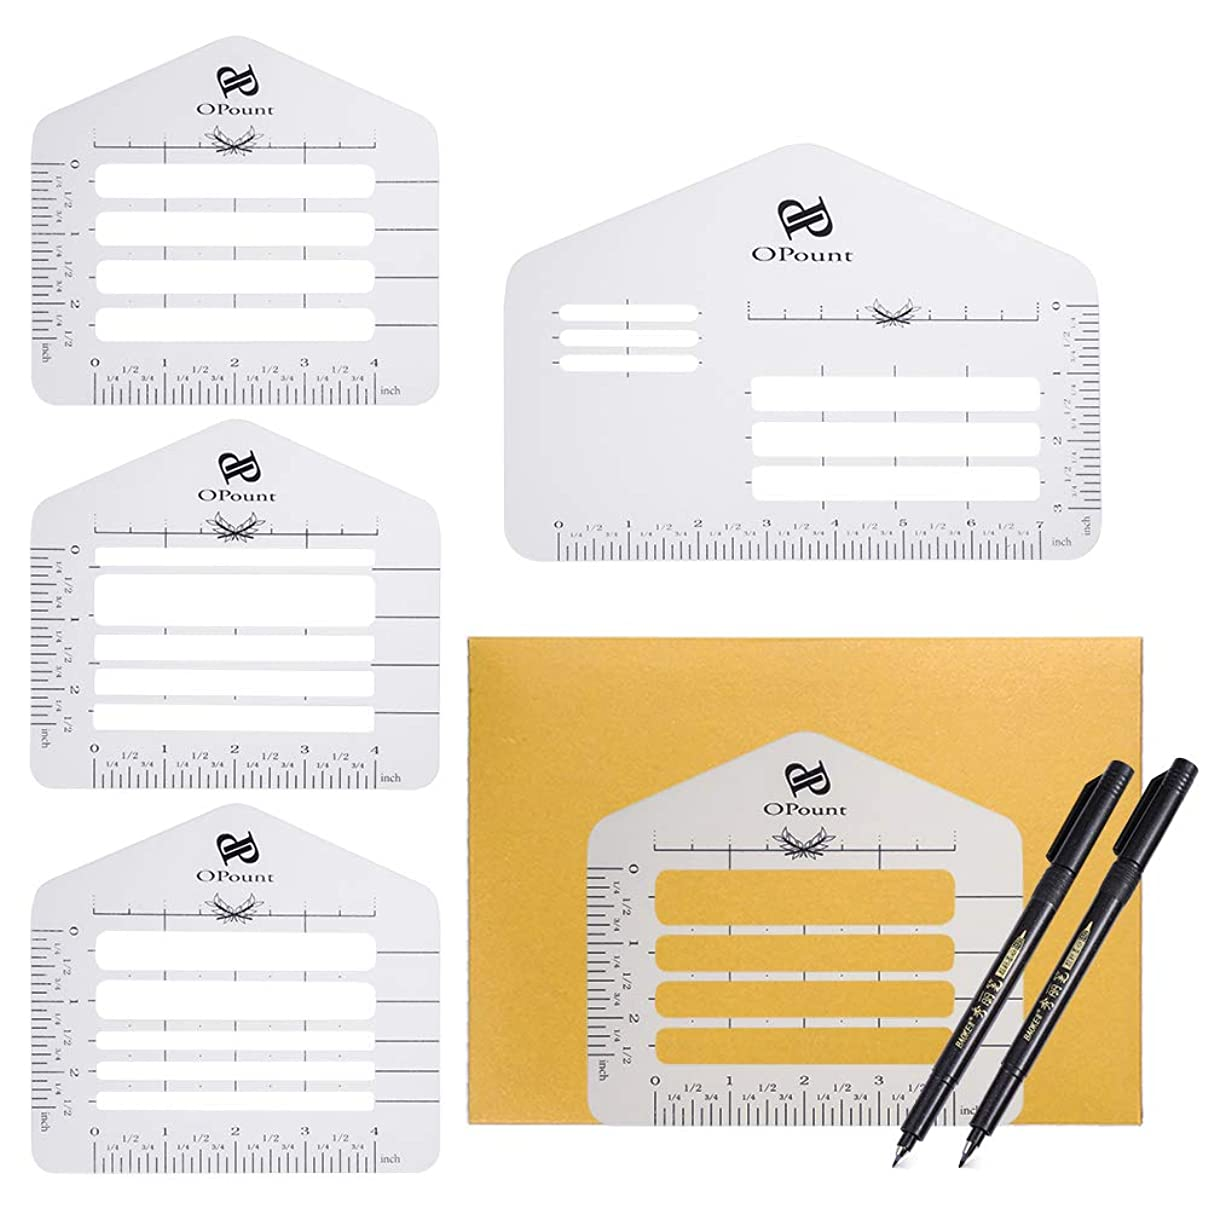 PP OPOUNT 8 Pieces Customized Envelope Addressing Guide Sets 5 Style Envelope Addressing Guide Stencil Templates with 2 Size Brush Pens Fits Wide Range of Envelopes, Sewing, Thank You Card